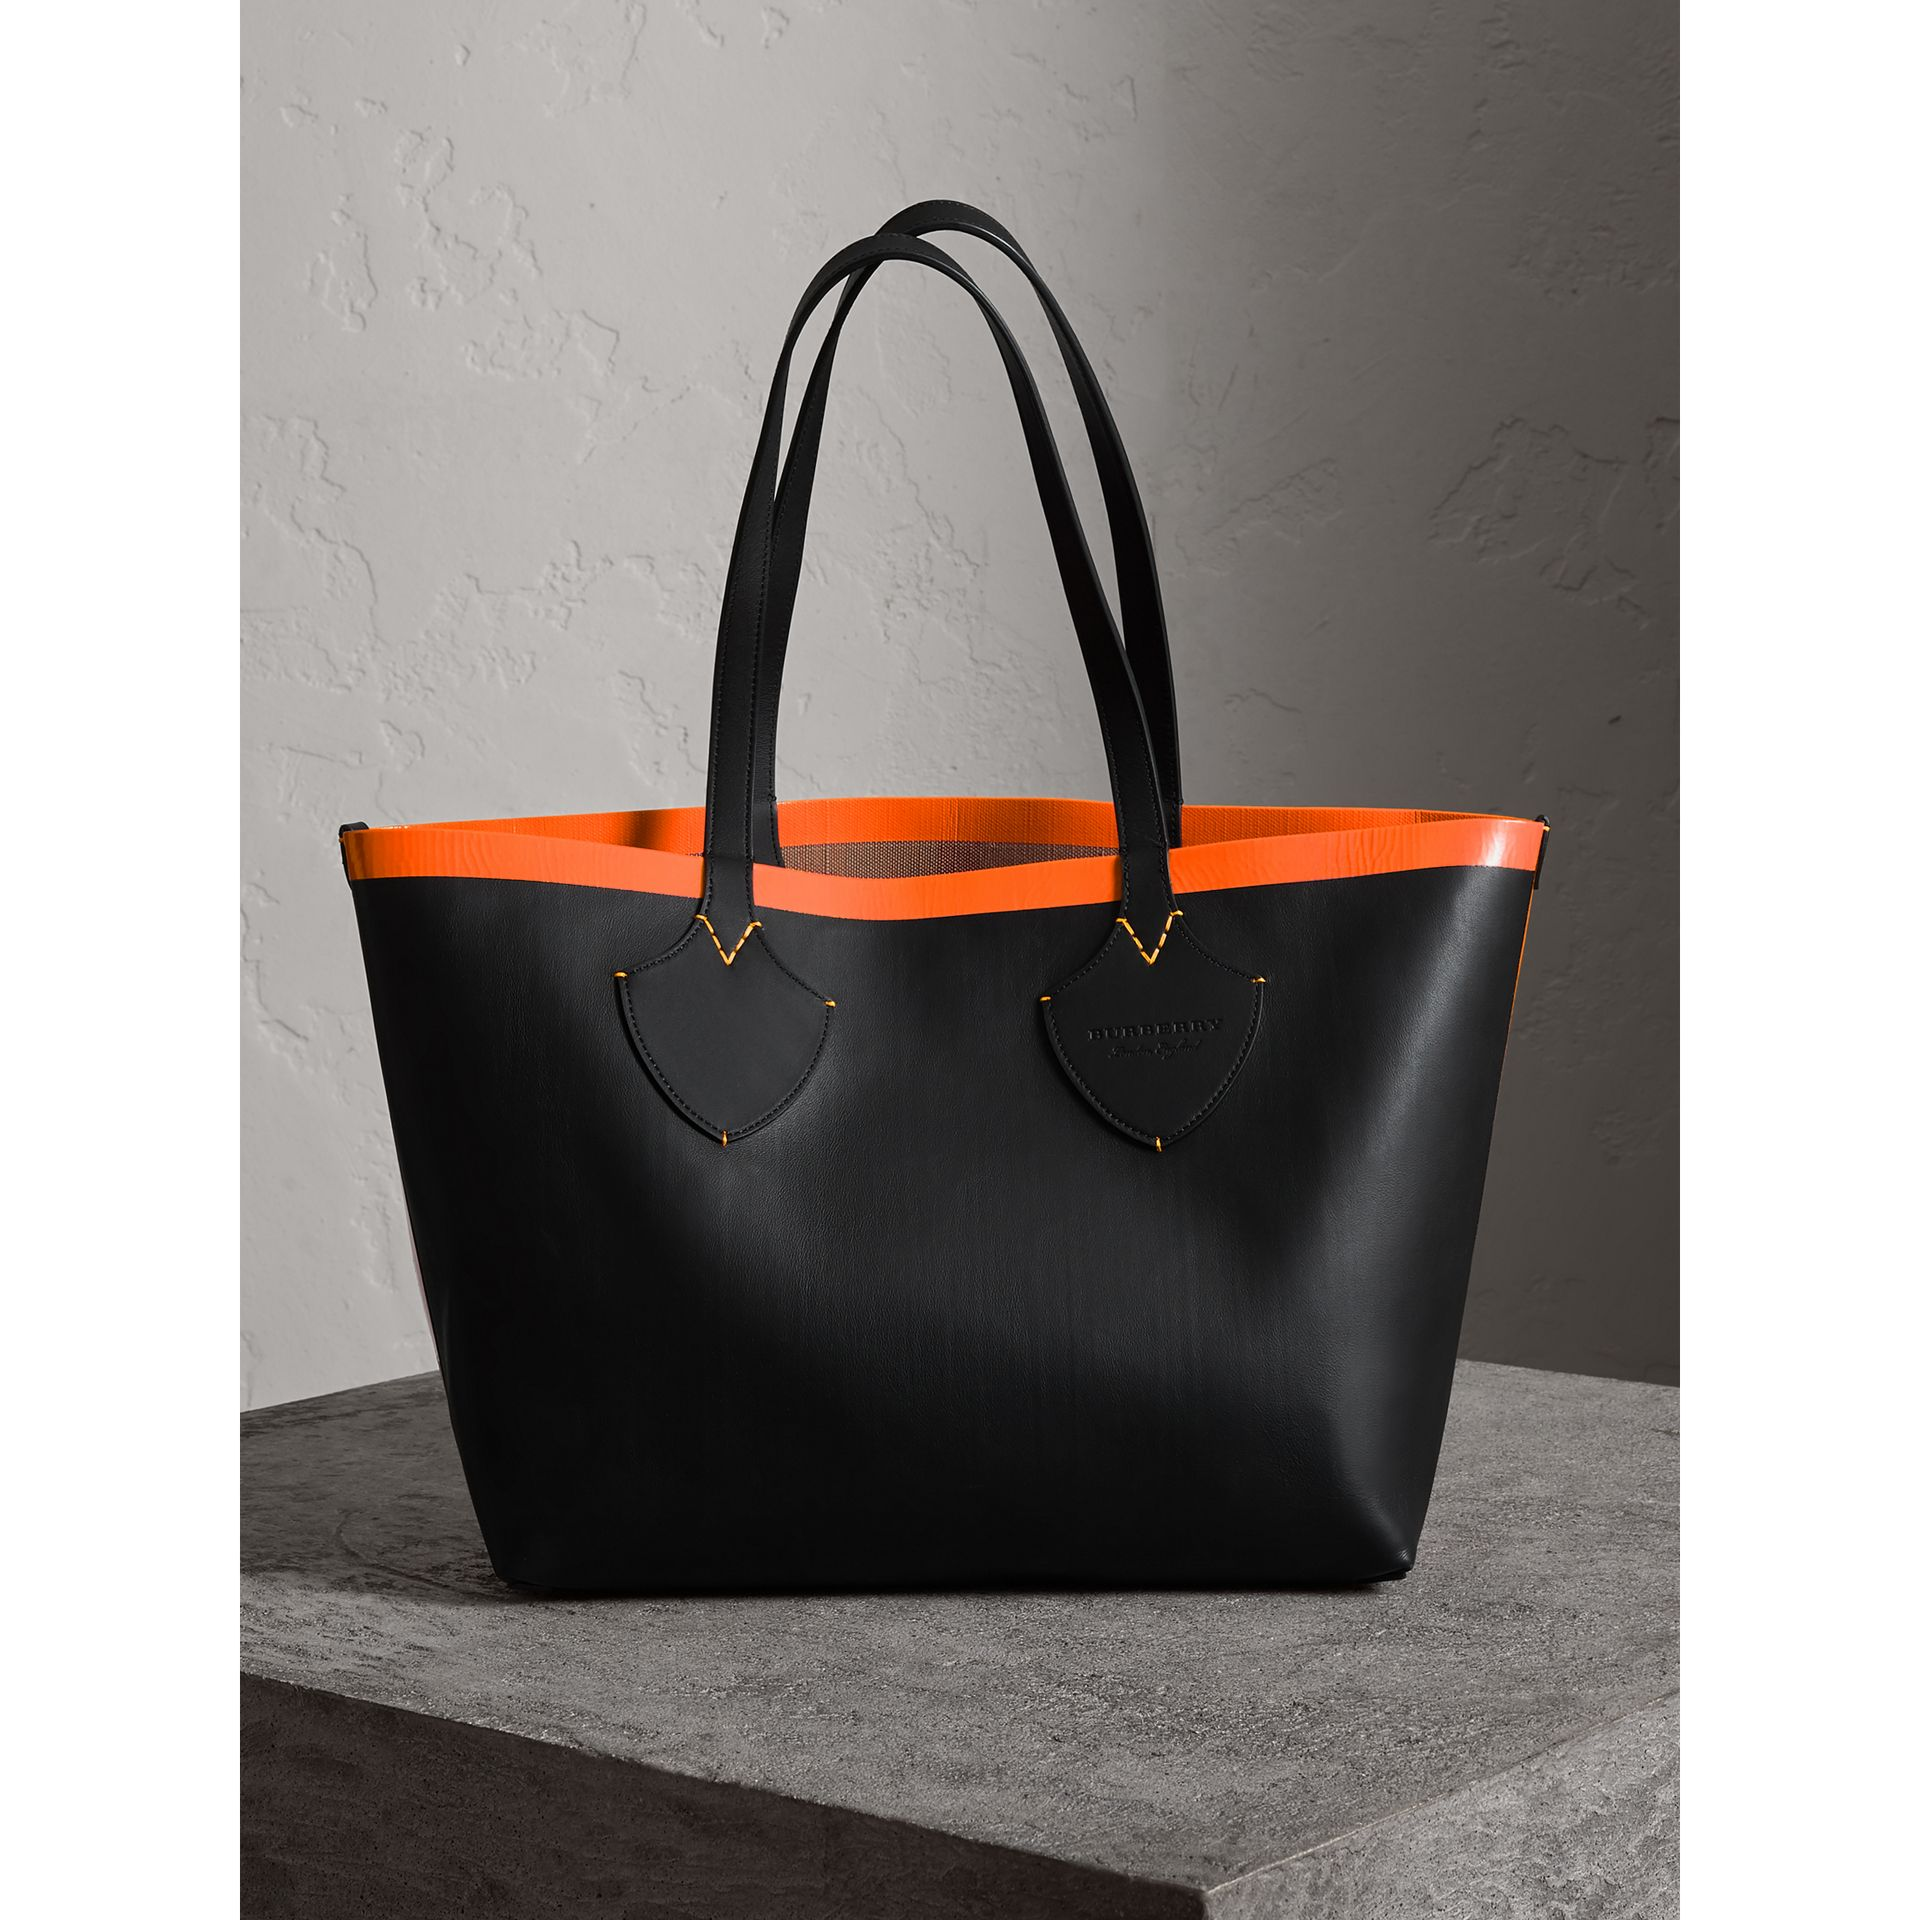 Sac tote The Giant moyen réversible en toile et en cuir (Noir/orange Néon) | Burberry - photo de la galerie 7